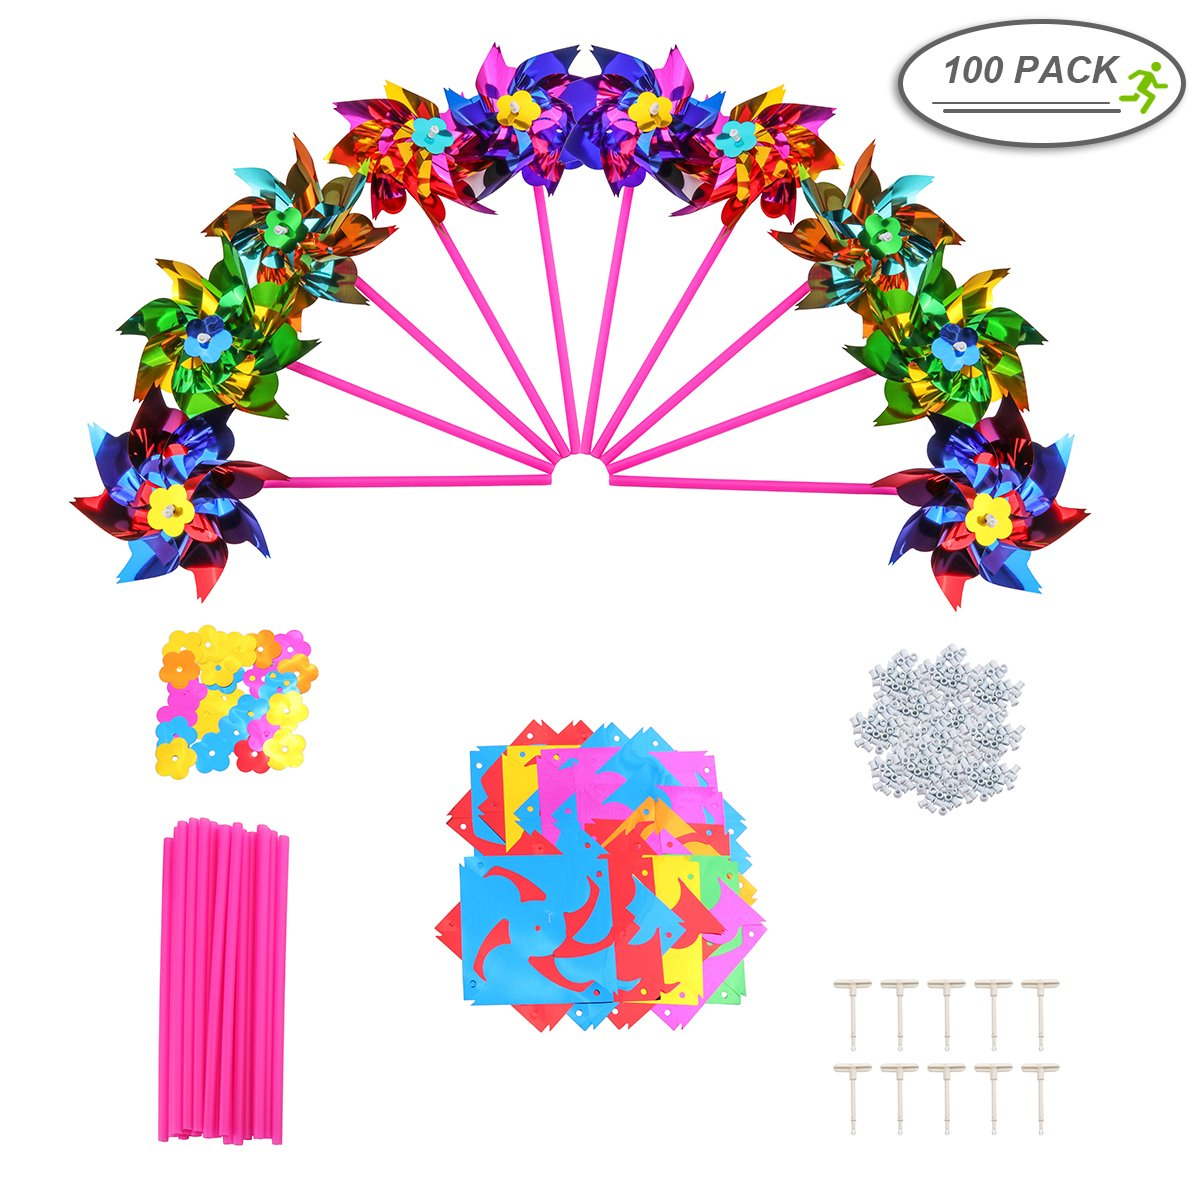 100pcs Pinwheels, Mini Wind Spinner for Kids - Small Party Pinwheels Windmill 6.3 x 11inch She-Lin